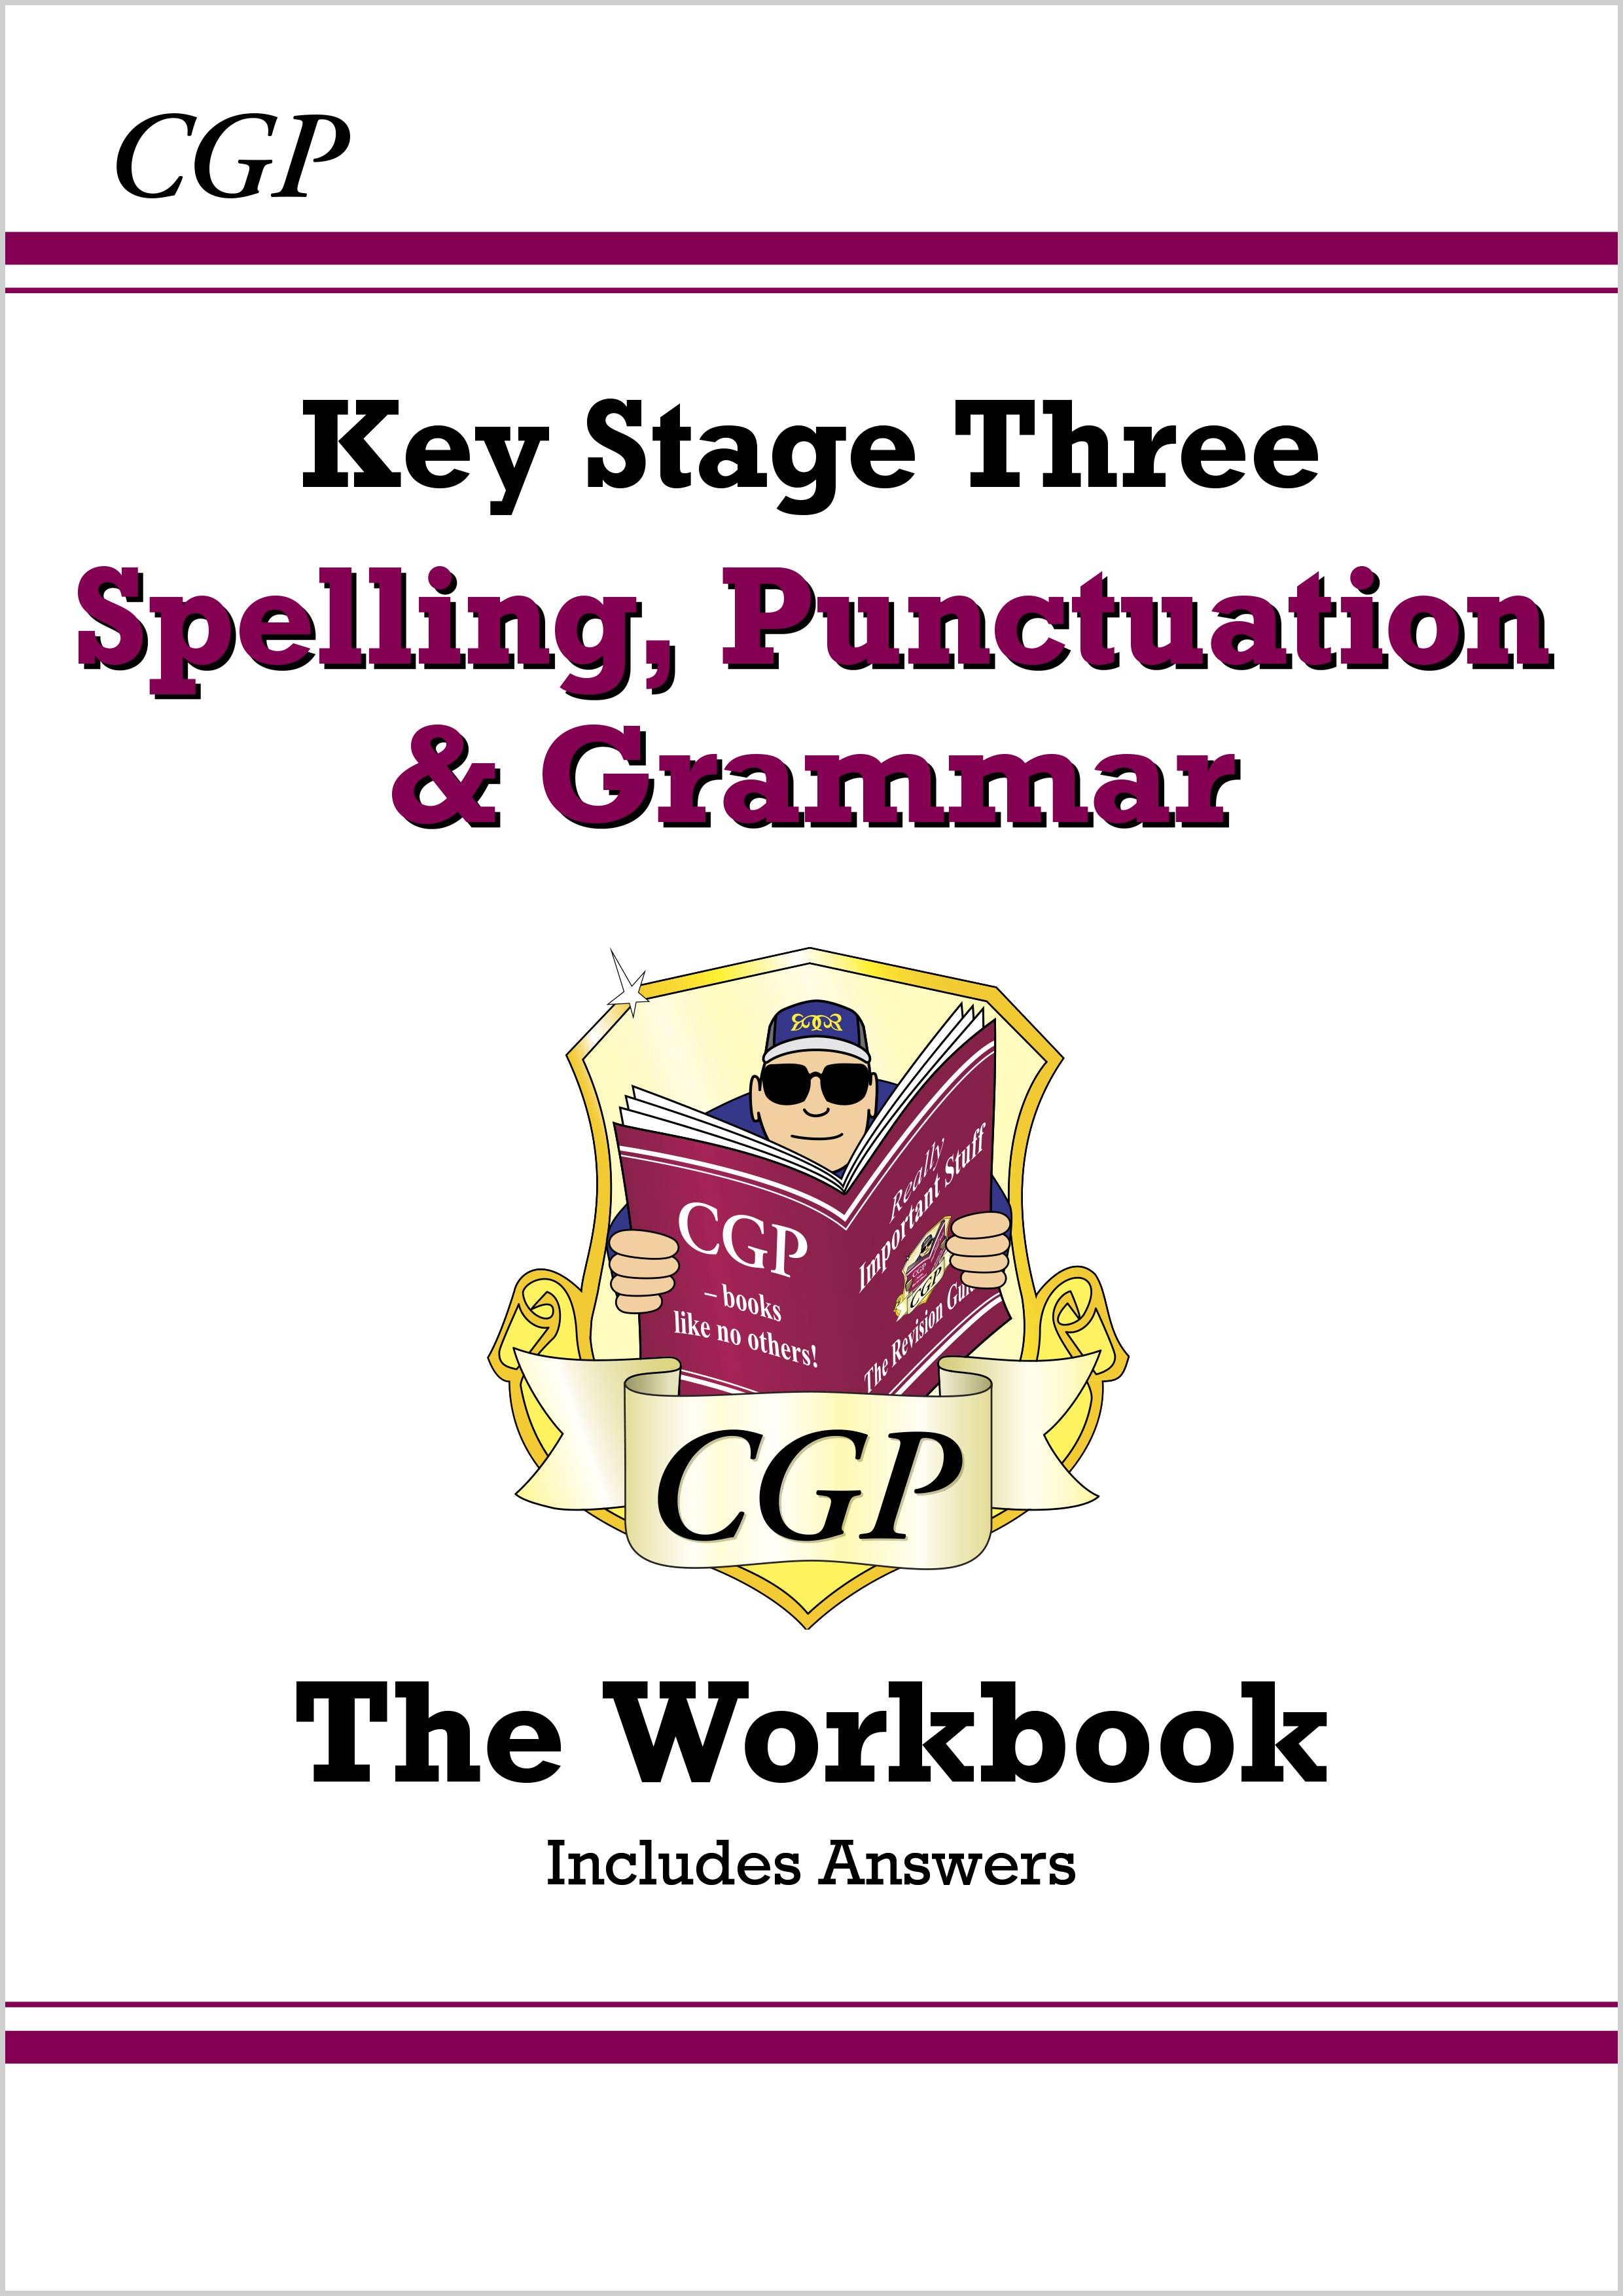 EGW31BD - Spelling, Punctuation and Grammar for KS3 - Workbook (with answers) - Online Edition